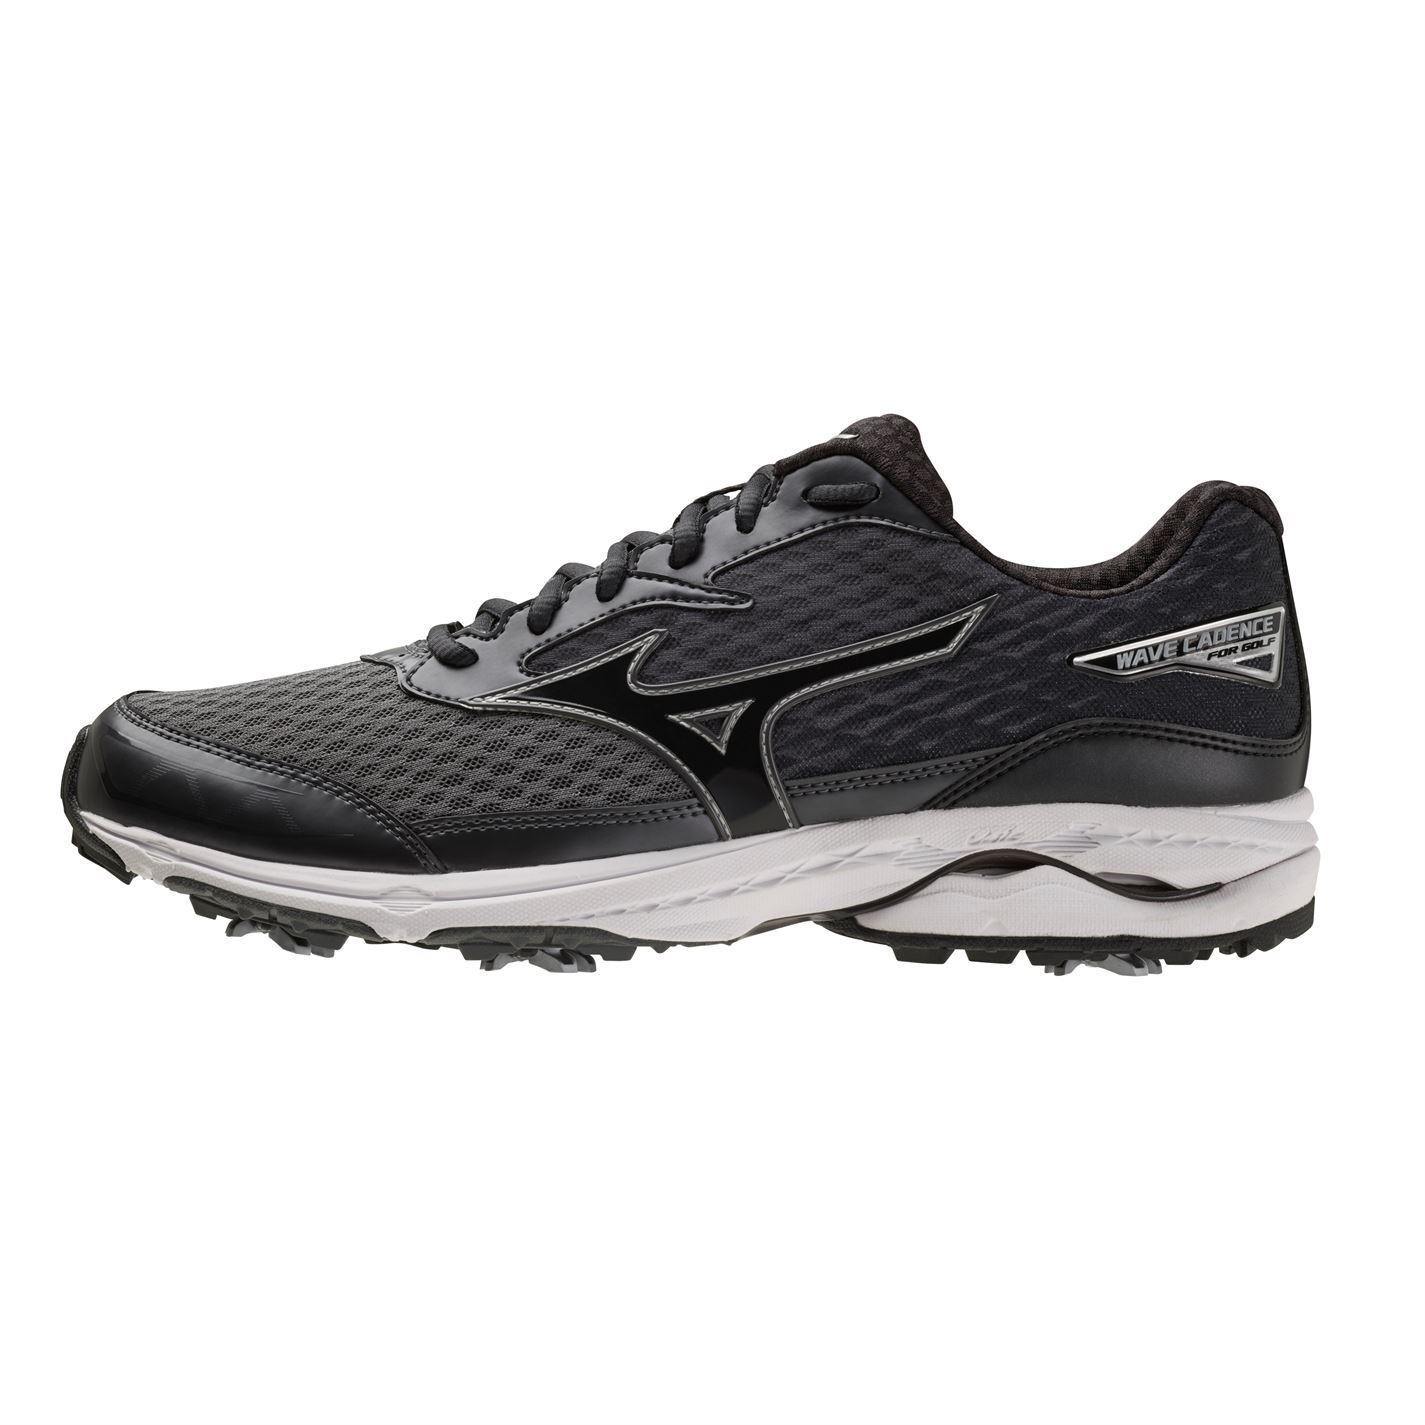 mizuno golf shoes canada price